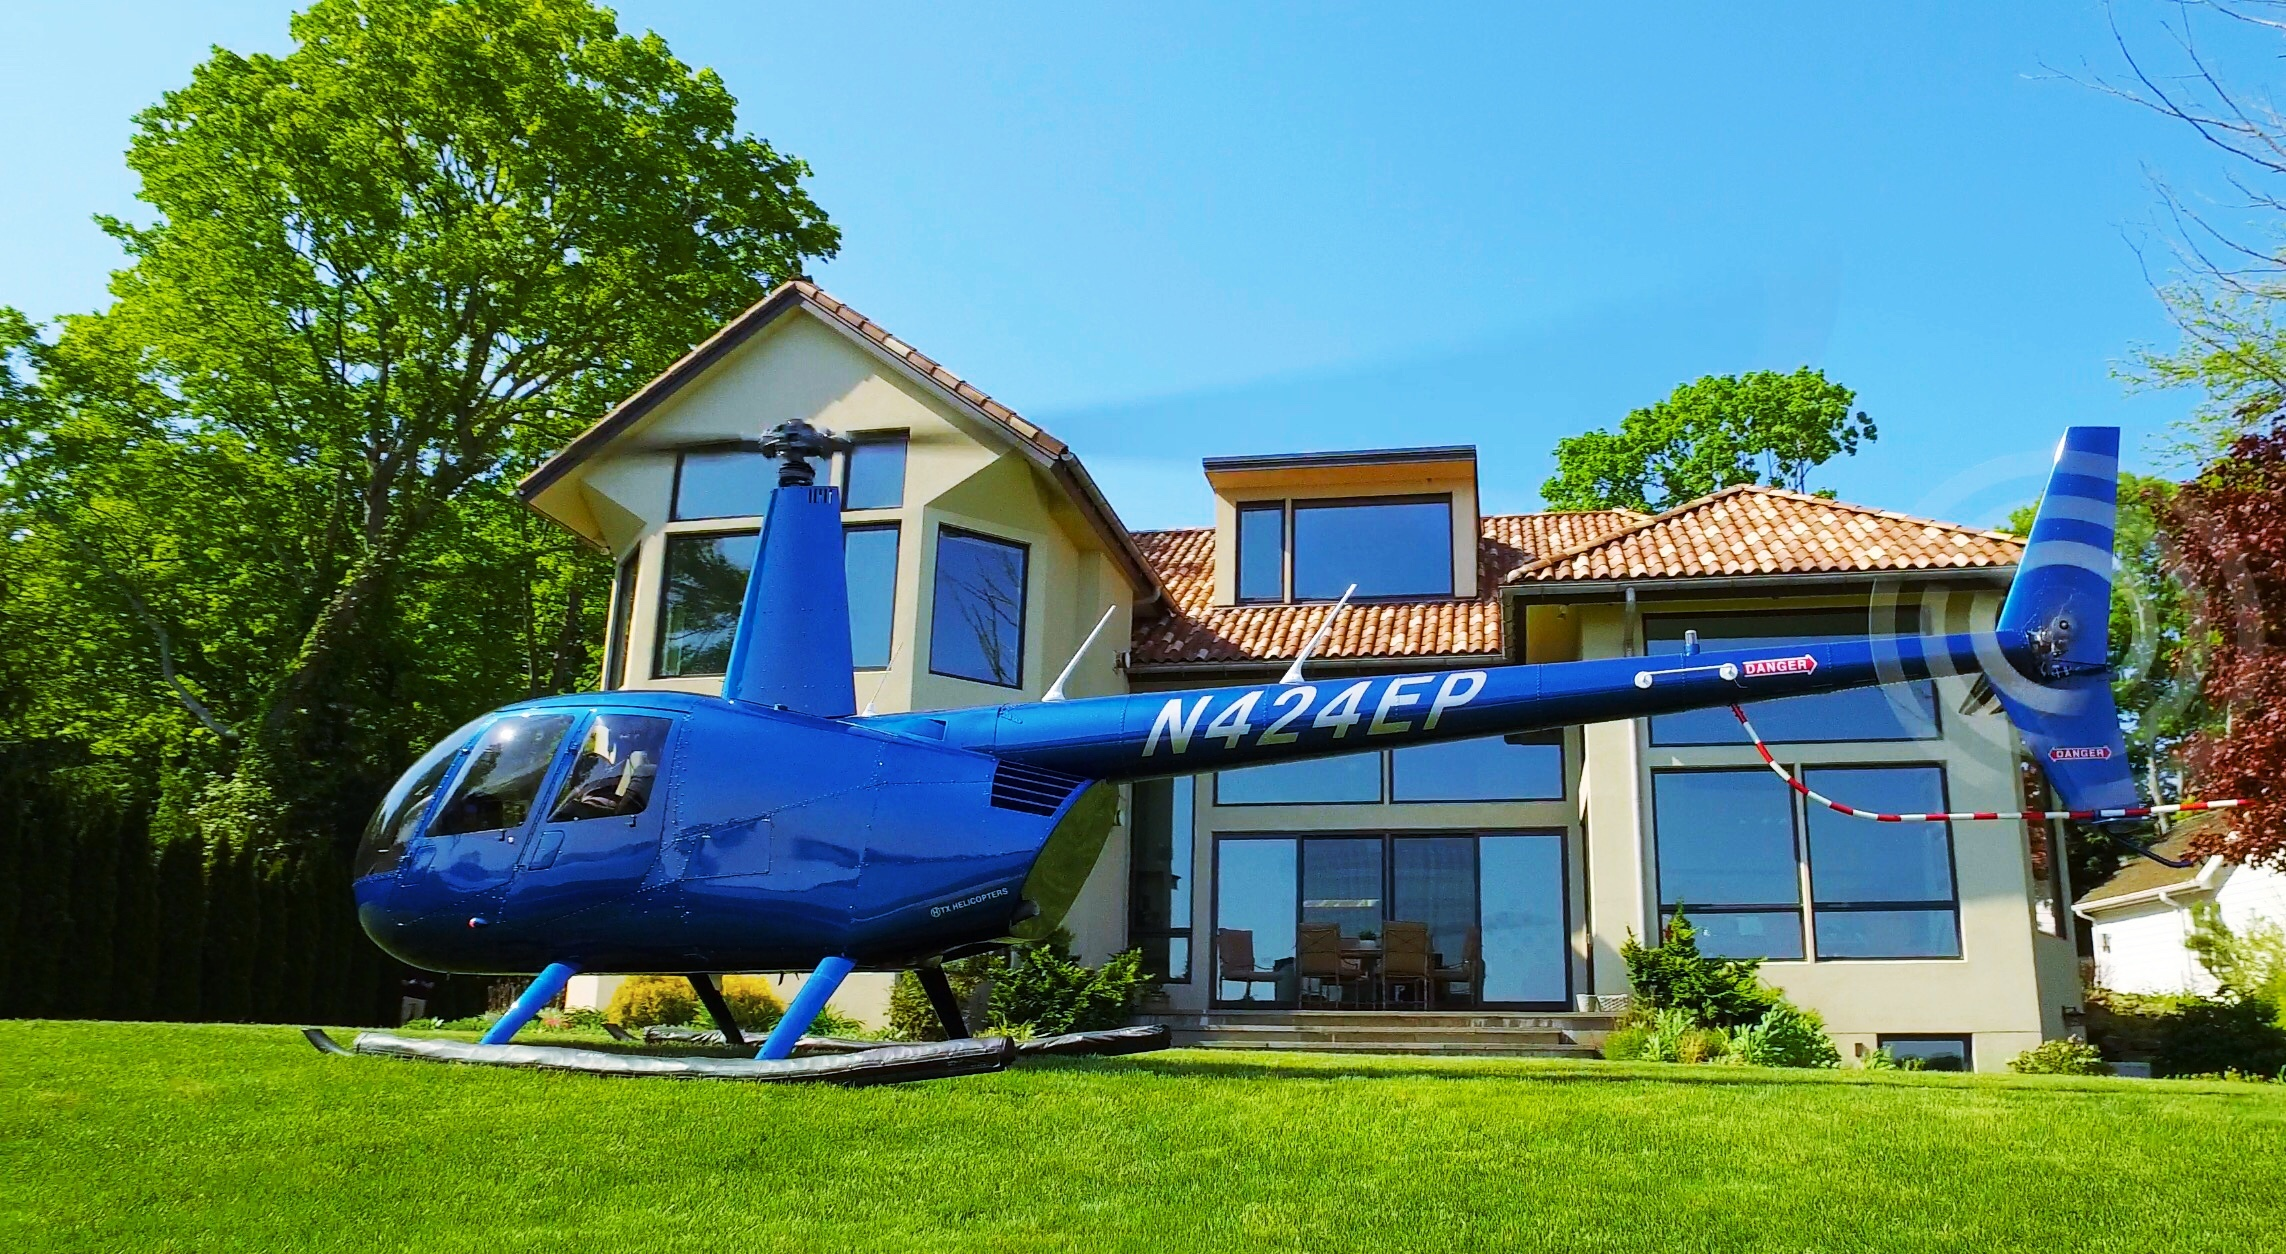 69e446c6093a9 Land a Private Helicopter at this $3.15mm Connecticut Waterfront ...